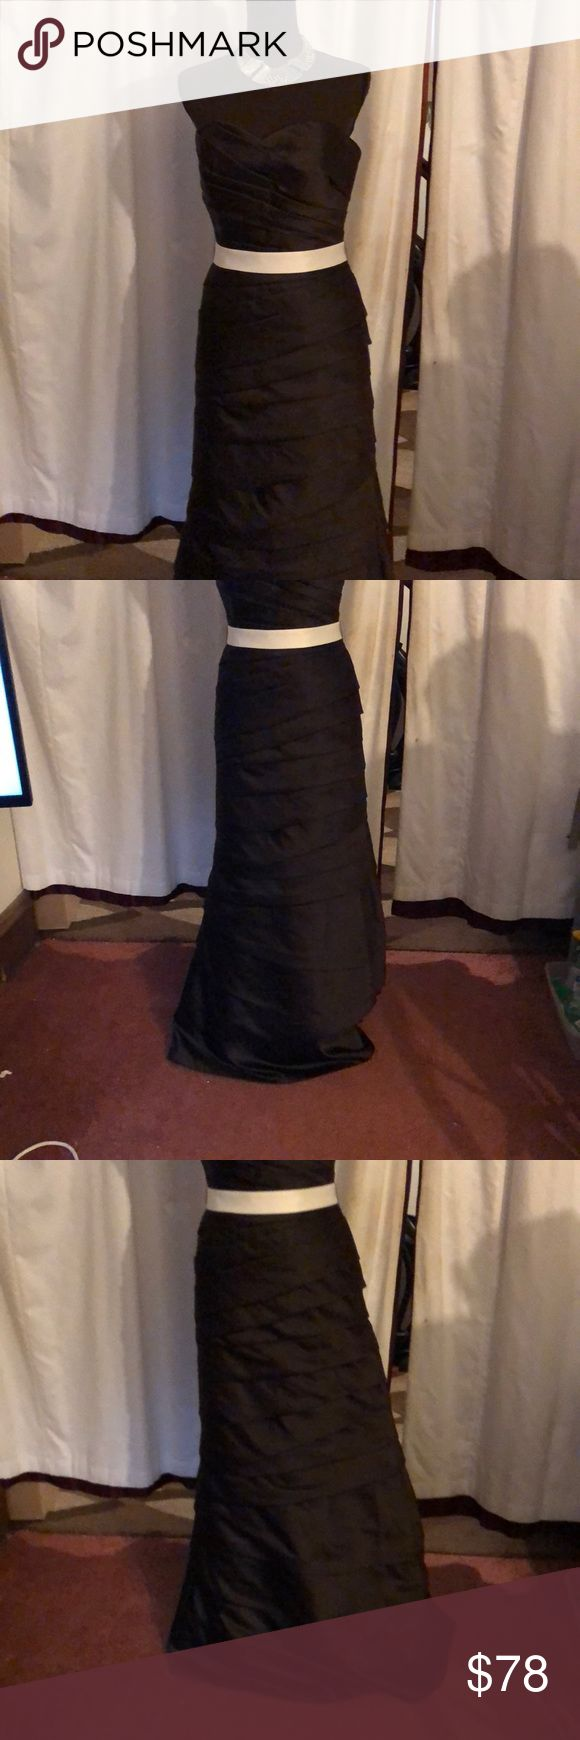 Gorgeous Brown Prom NWT Tiered Gown Wedding sz 10 Saison Blanche Bridesmaids Brown layered fully line gown. Can be worn haltered or with straps  New with tags $278  Length 52 Underarm to underarm 18 Saison Blanche Dresses Wedding